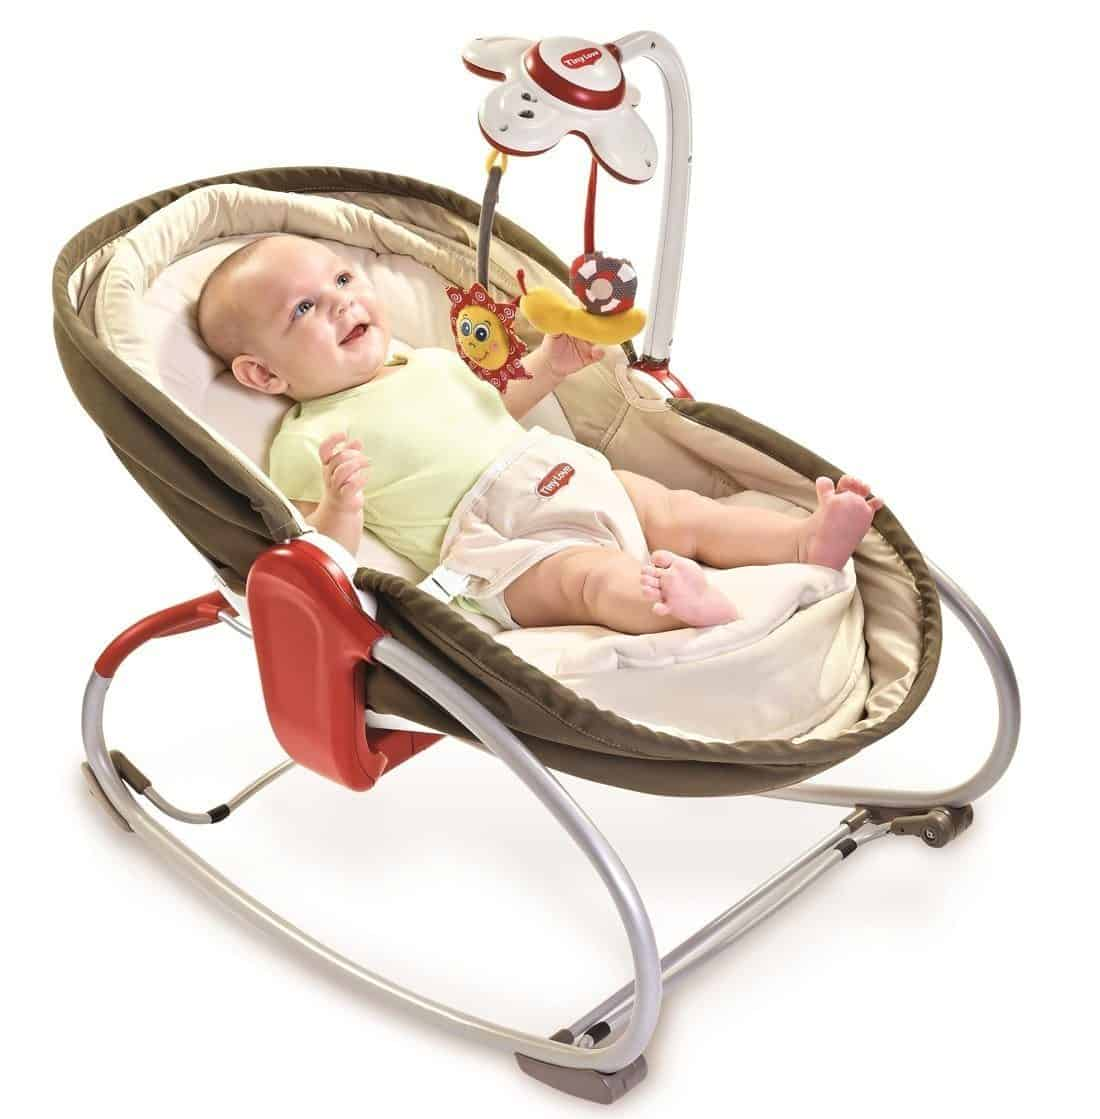 Best Baby Bouncers & Rockers